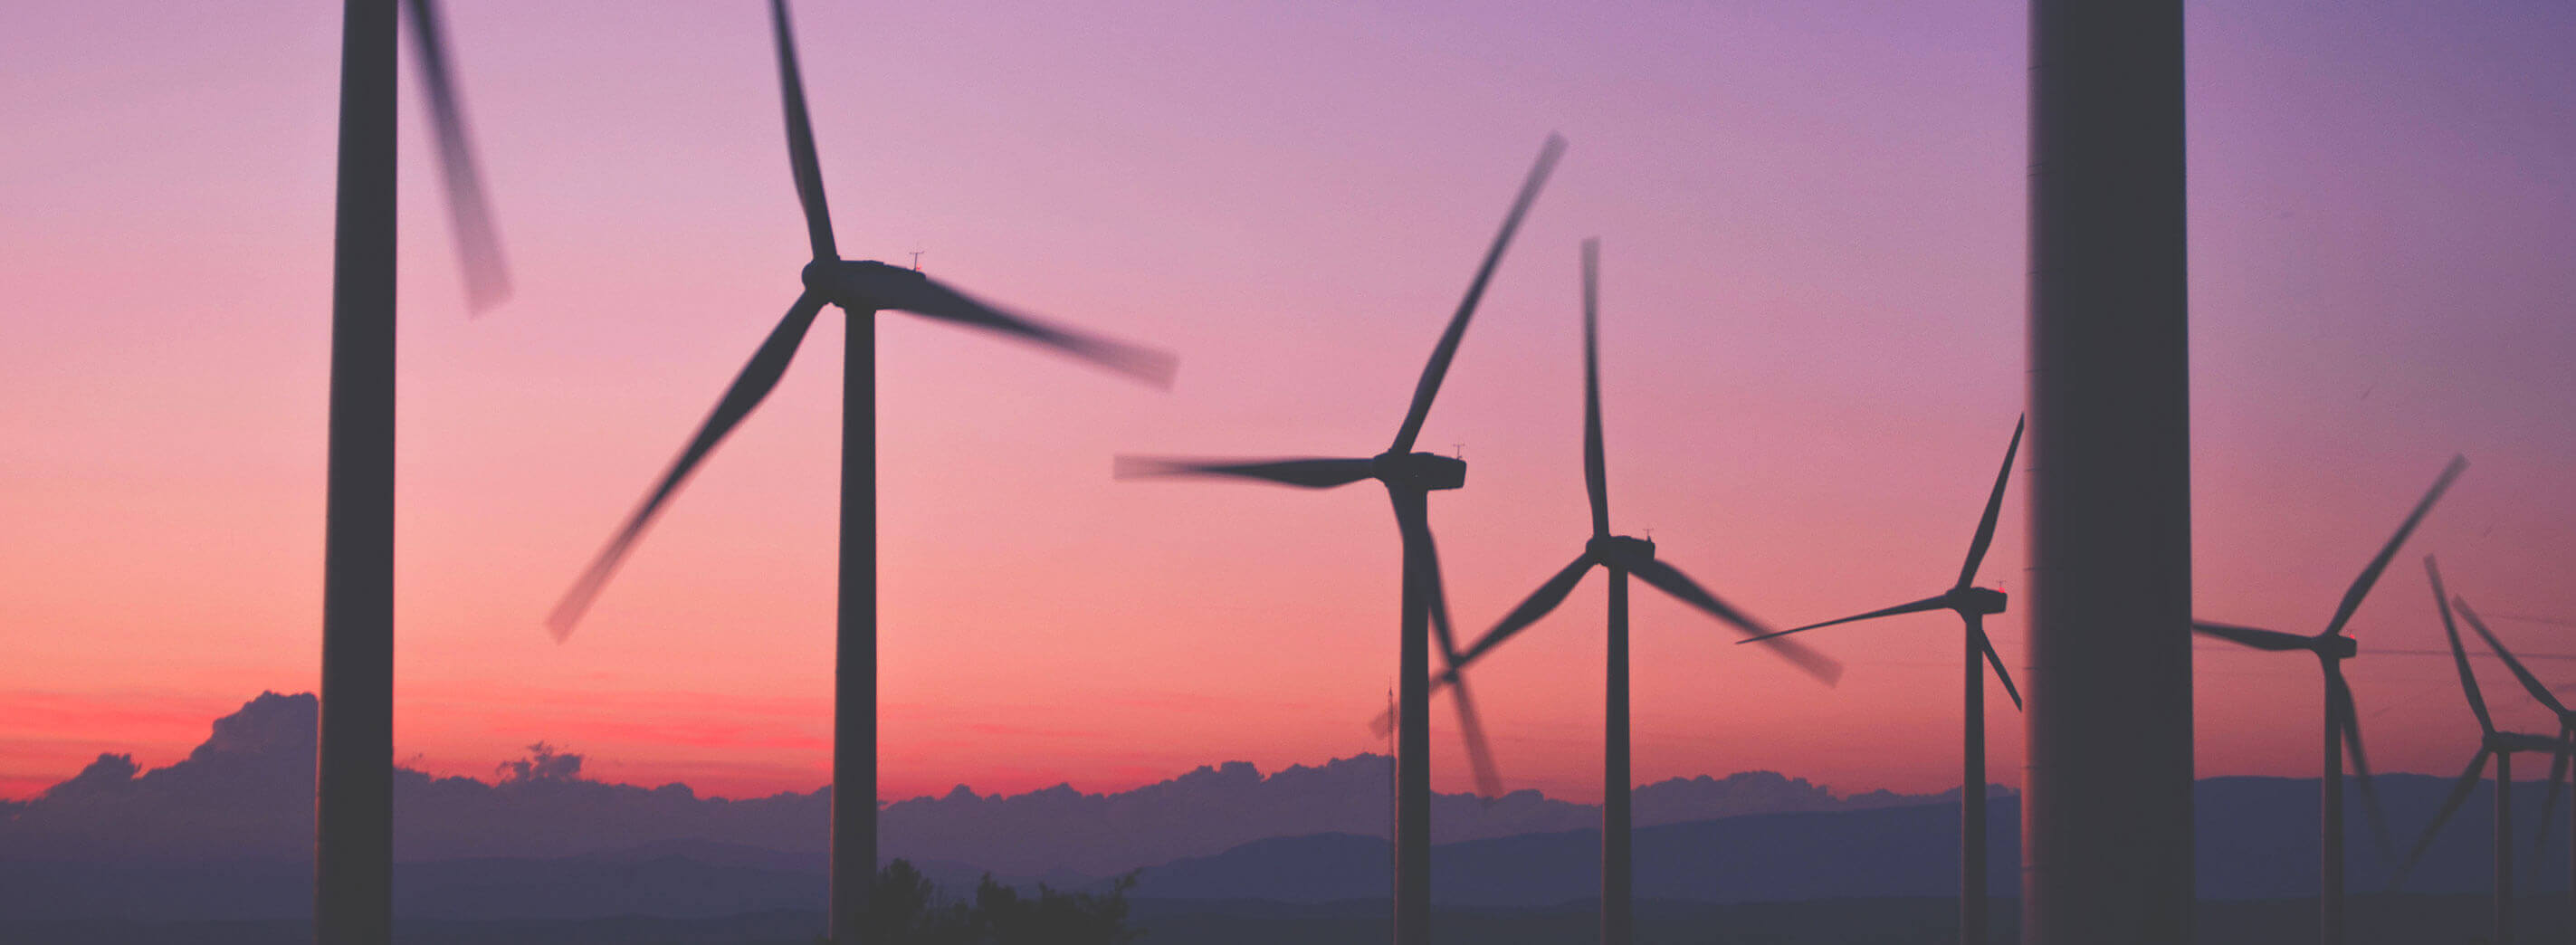 internet of things examples windmill